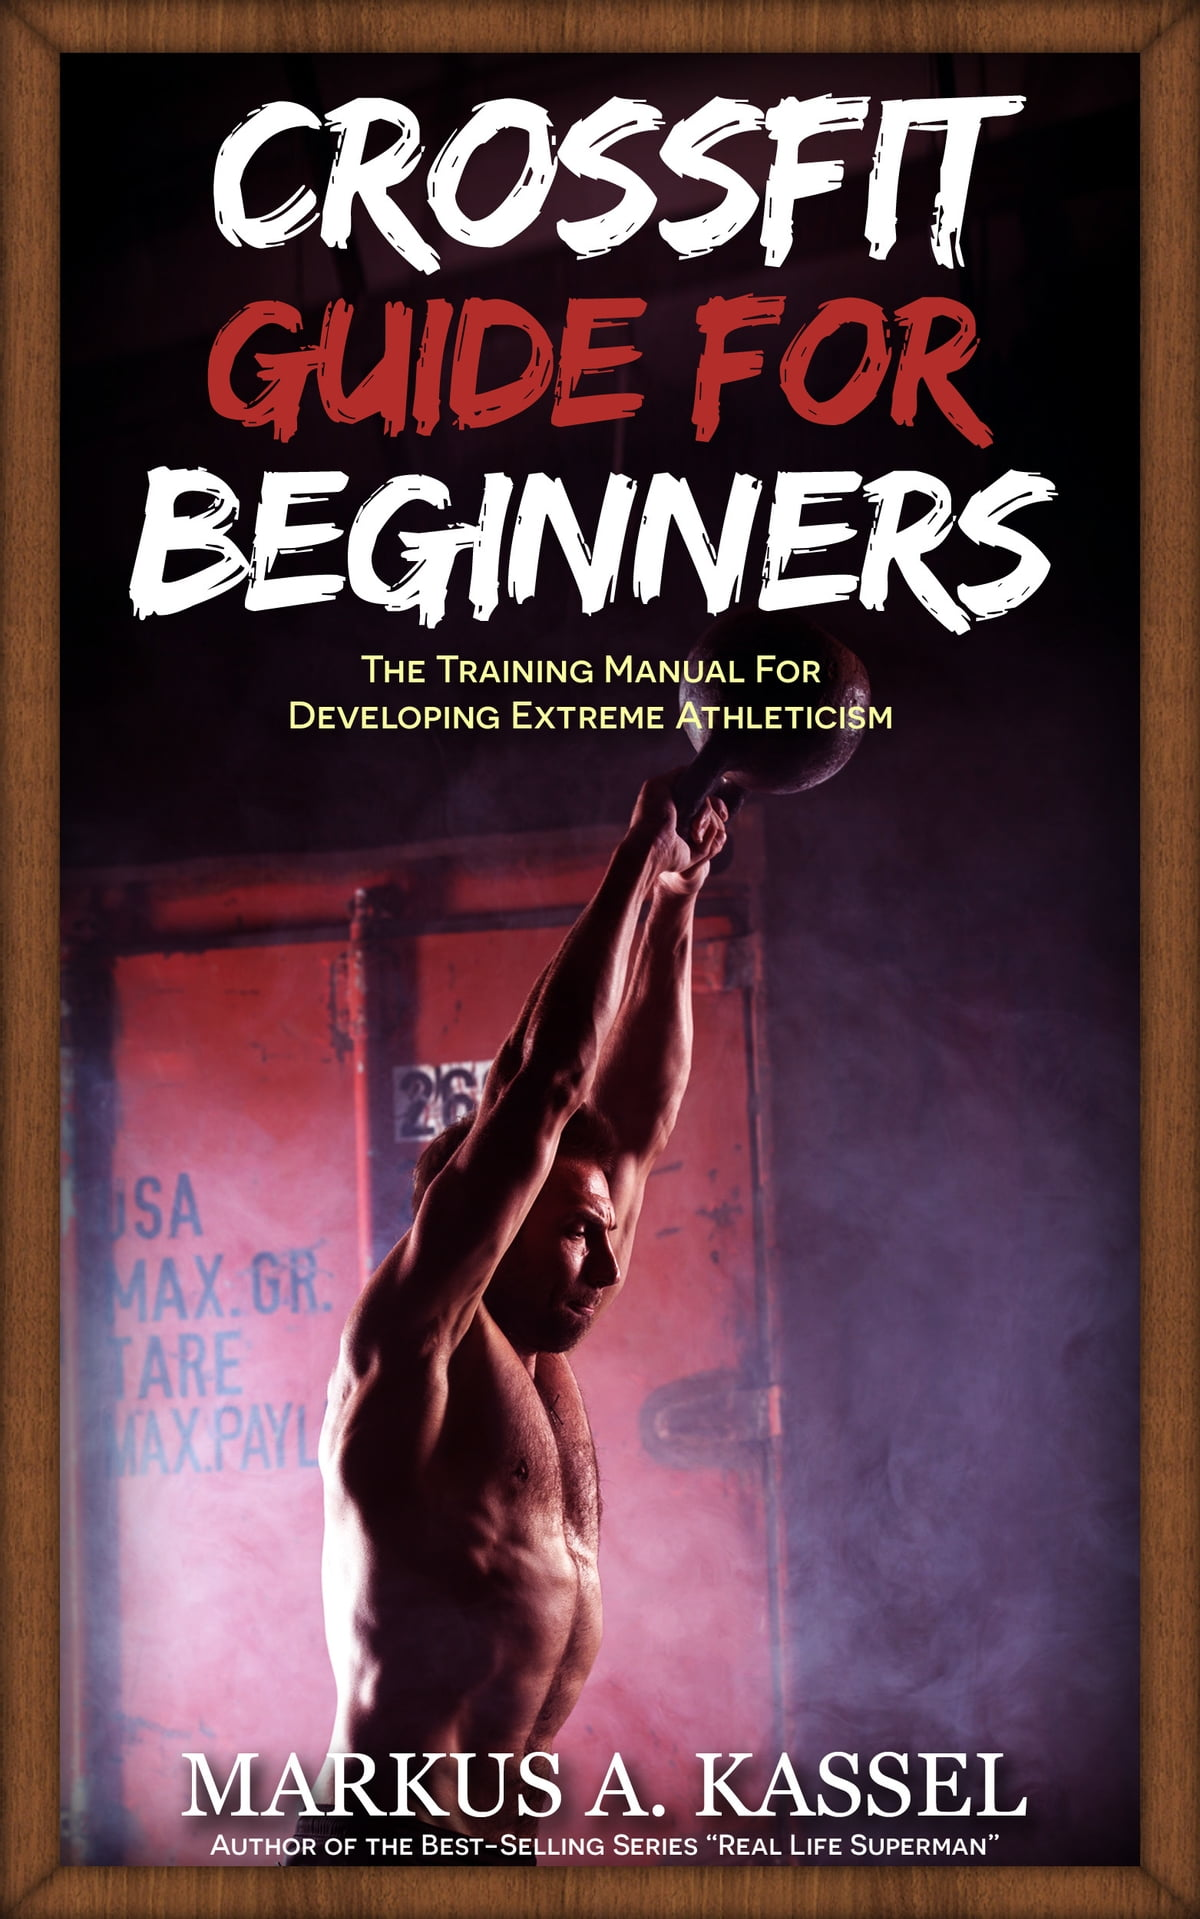 Crossfit Guide For Beginners The Training Manual Developing Workouts Wod Extreme Athleticism Exercises Nutrition Wods Included Ebook By Markus A Kassel